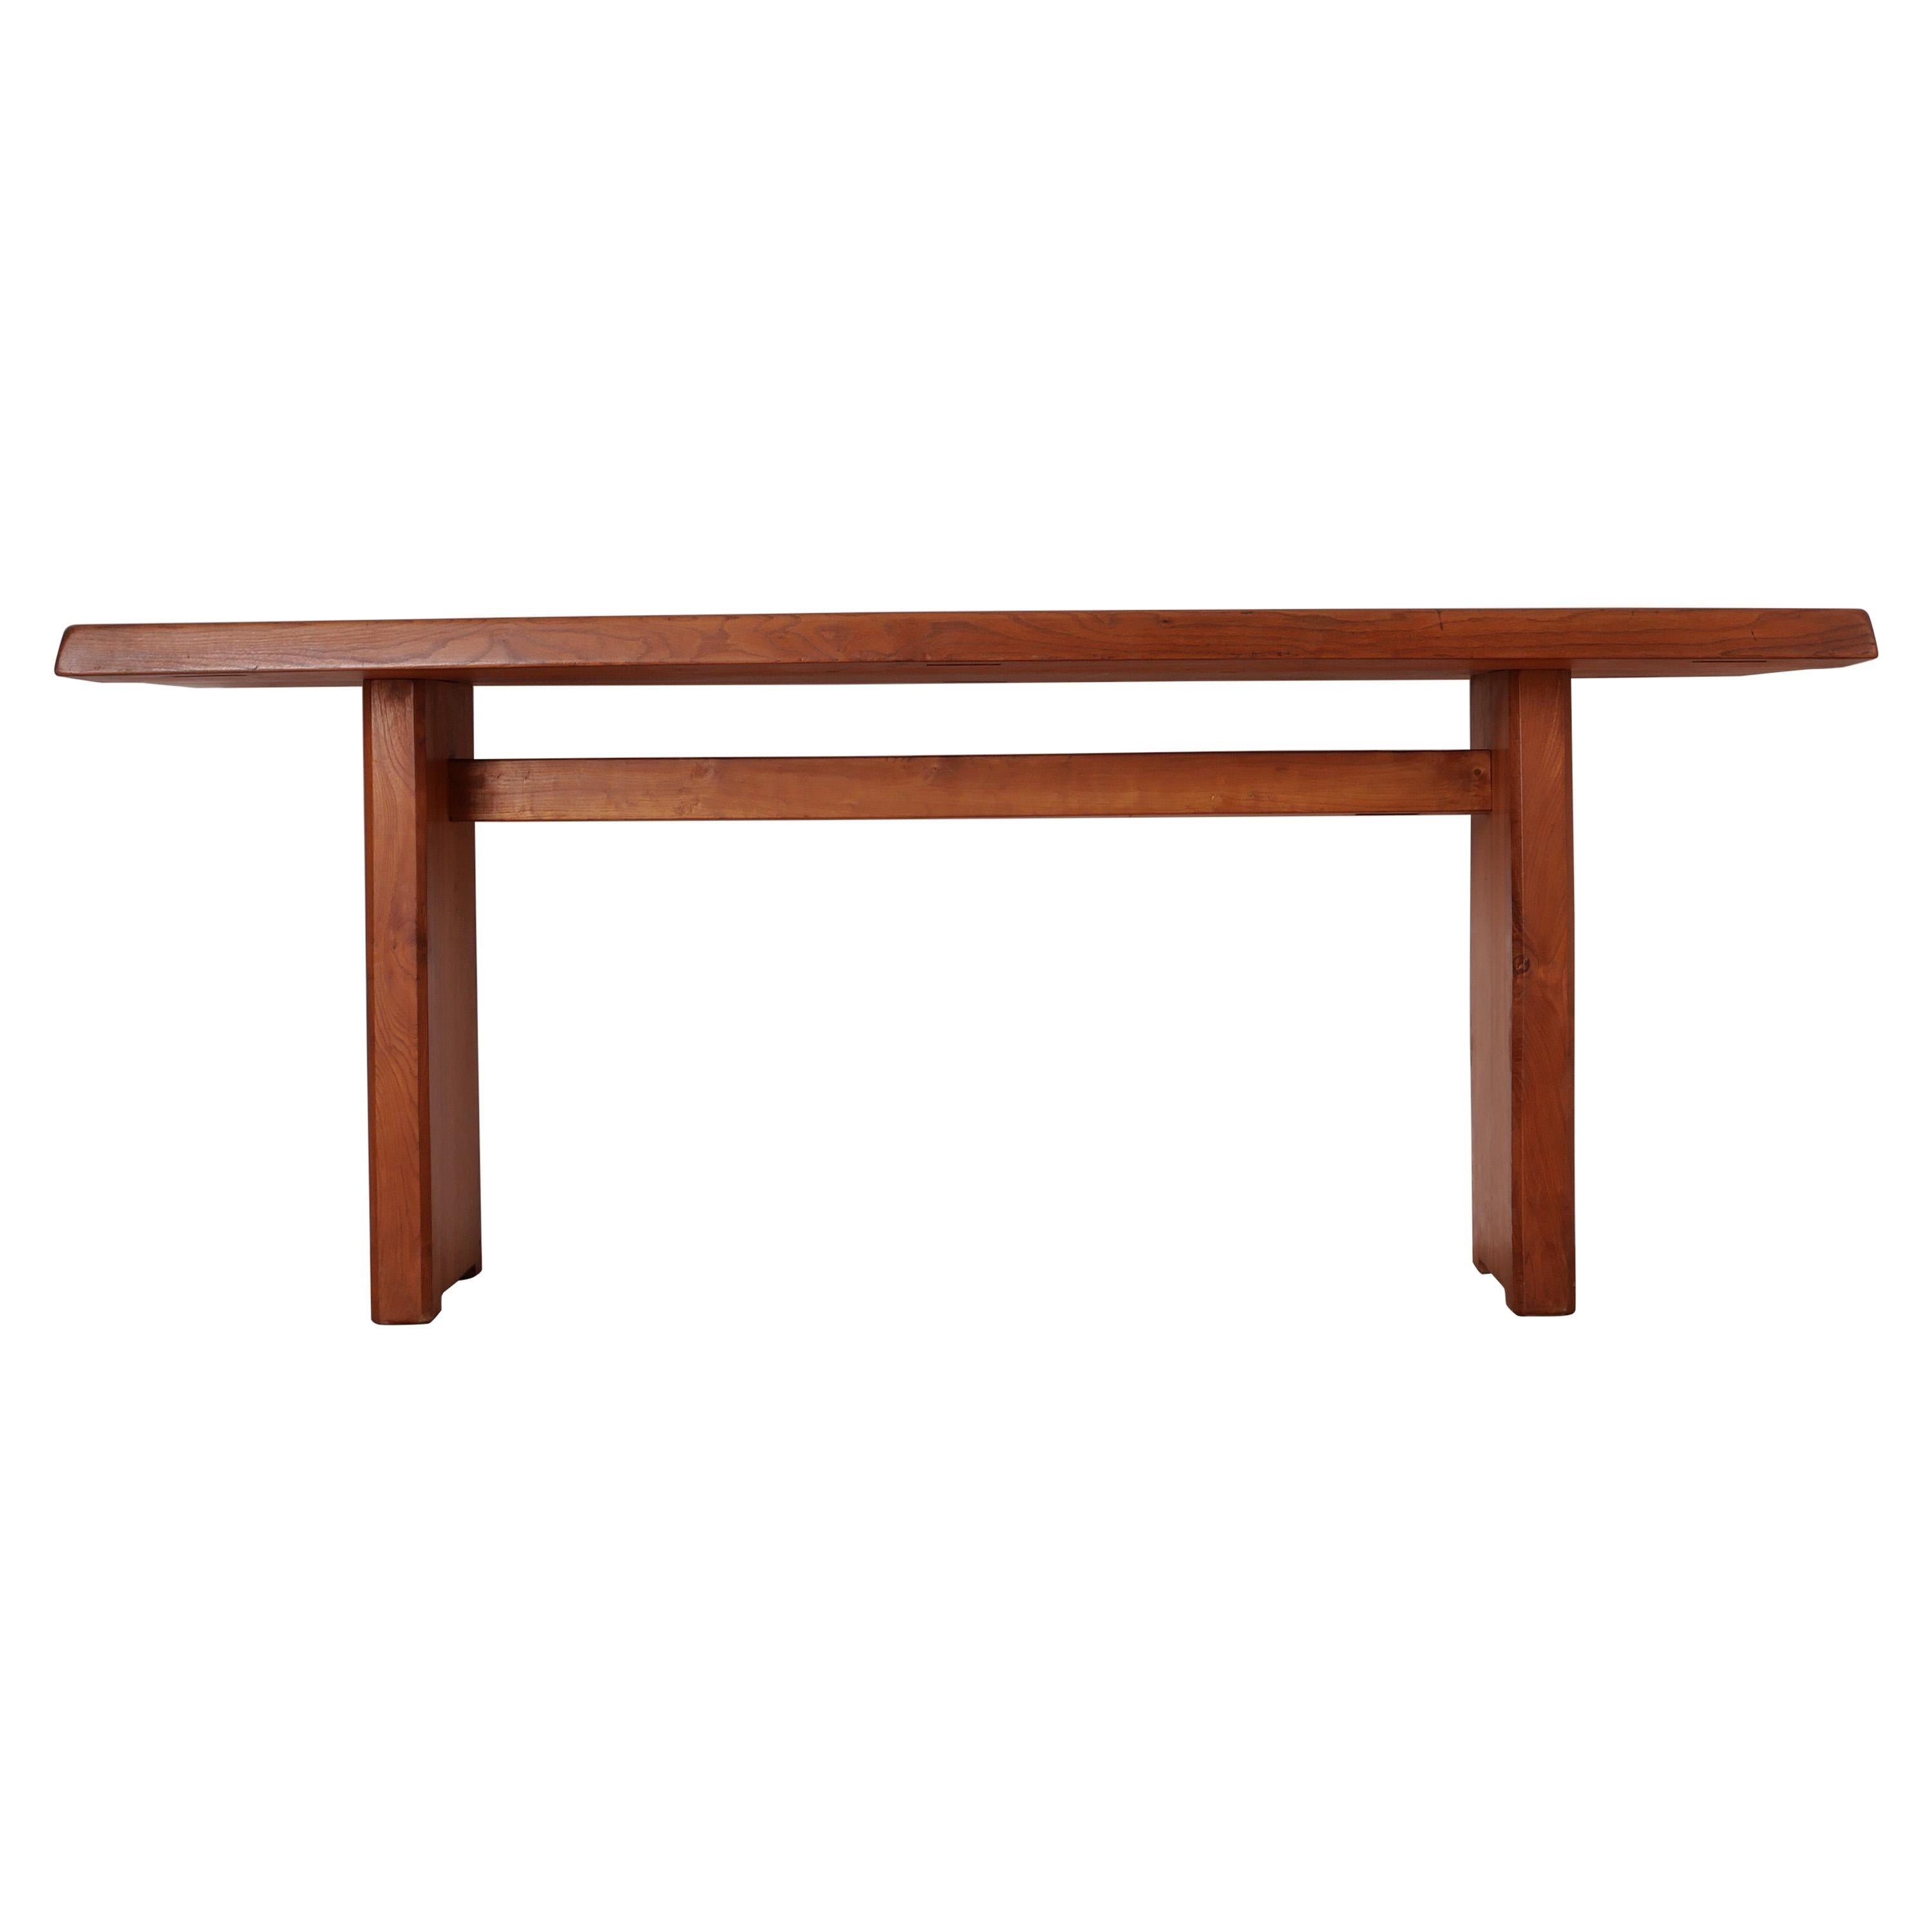 Pierre Chapo T14C Dinning Table, French Elm, circa 1971